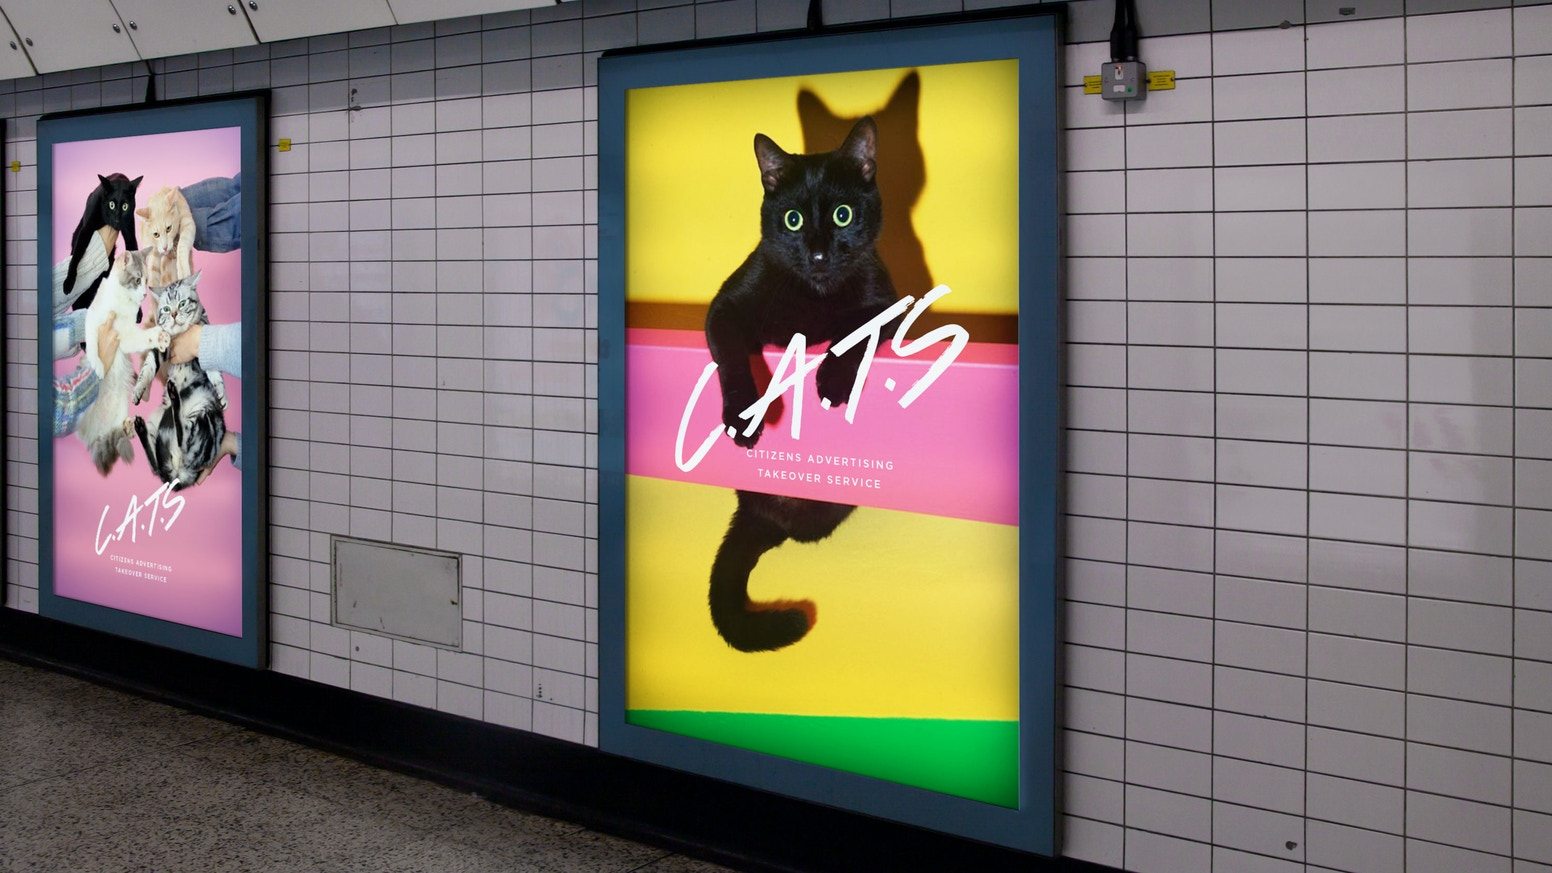 We took over Clapham Common station for two amazing weeks. You can find out more about the project and help with our next takeover at CatsNotAds.org